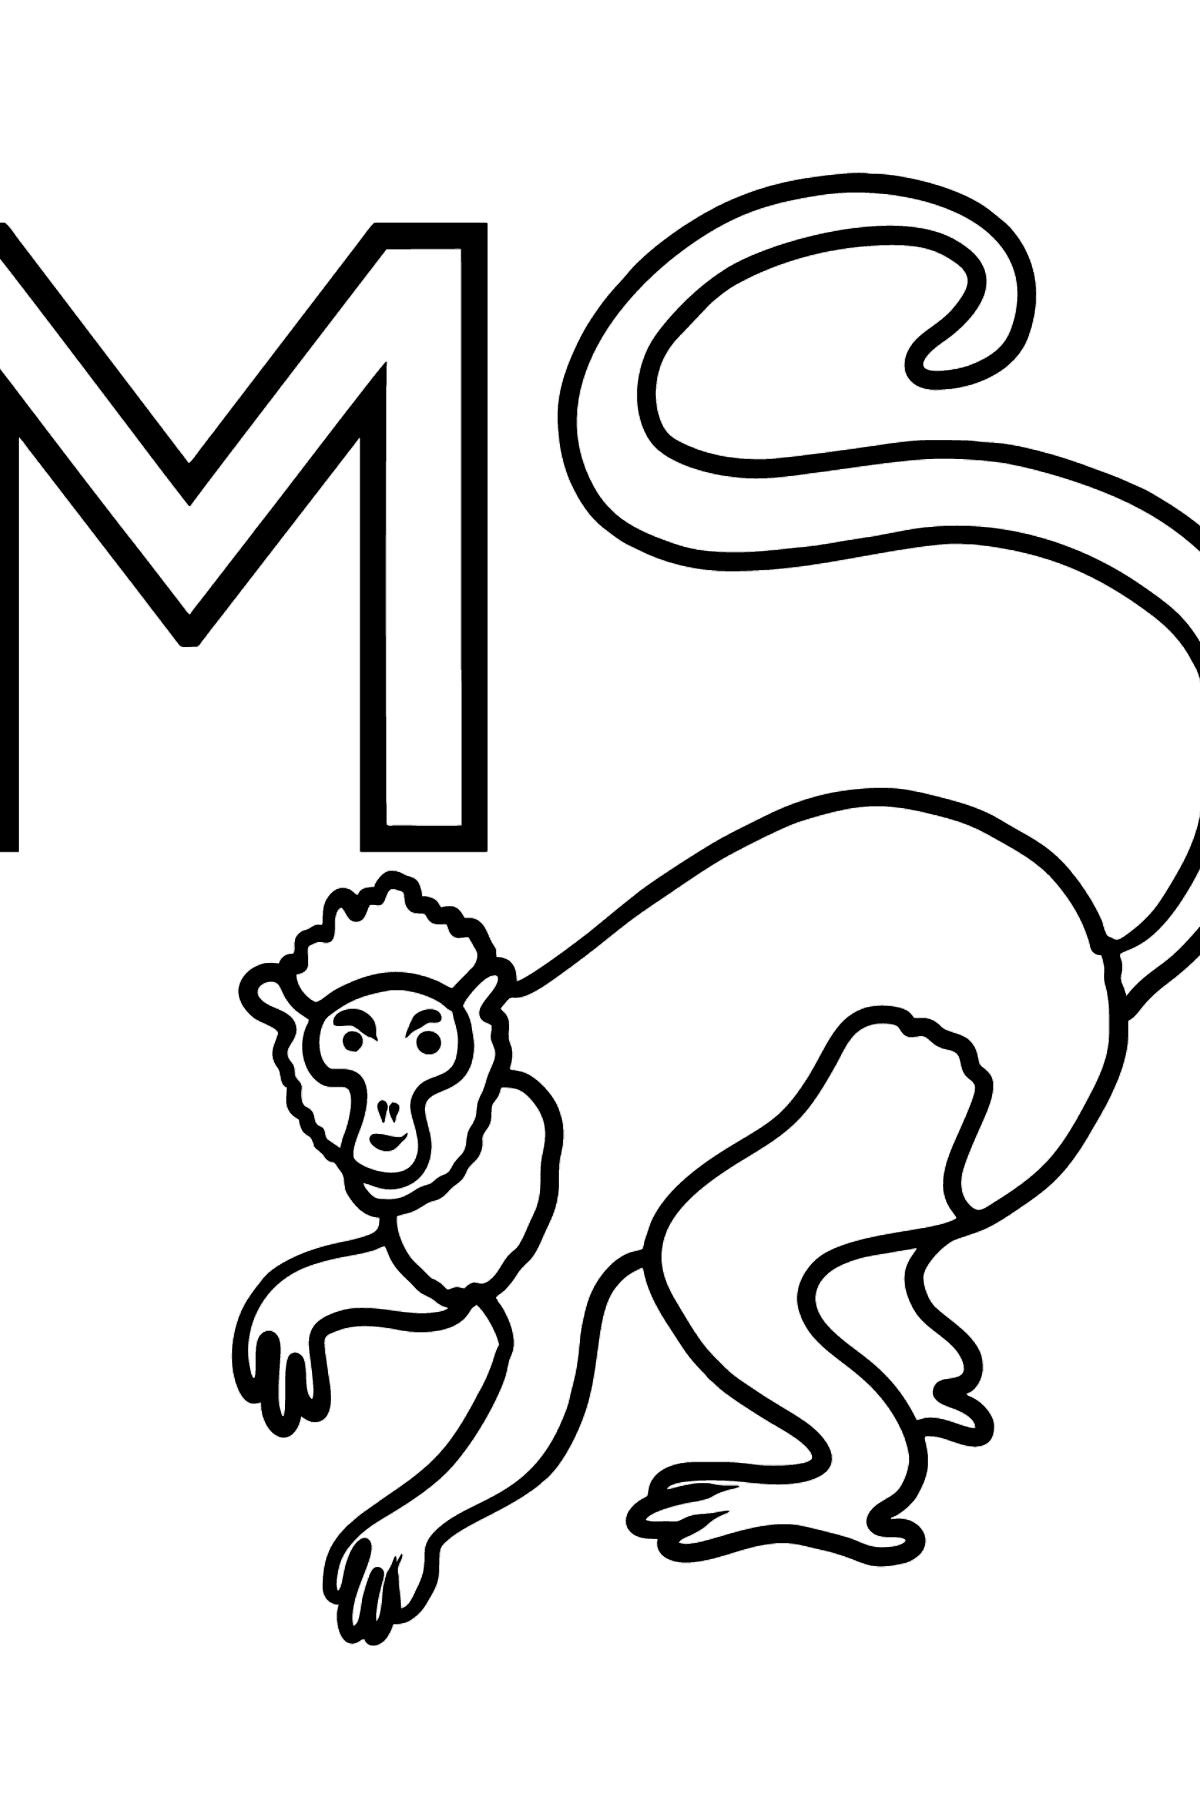 Portuguese Letter M coloring pages - MACACO - Coloring Pages for Kids